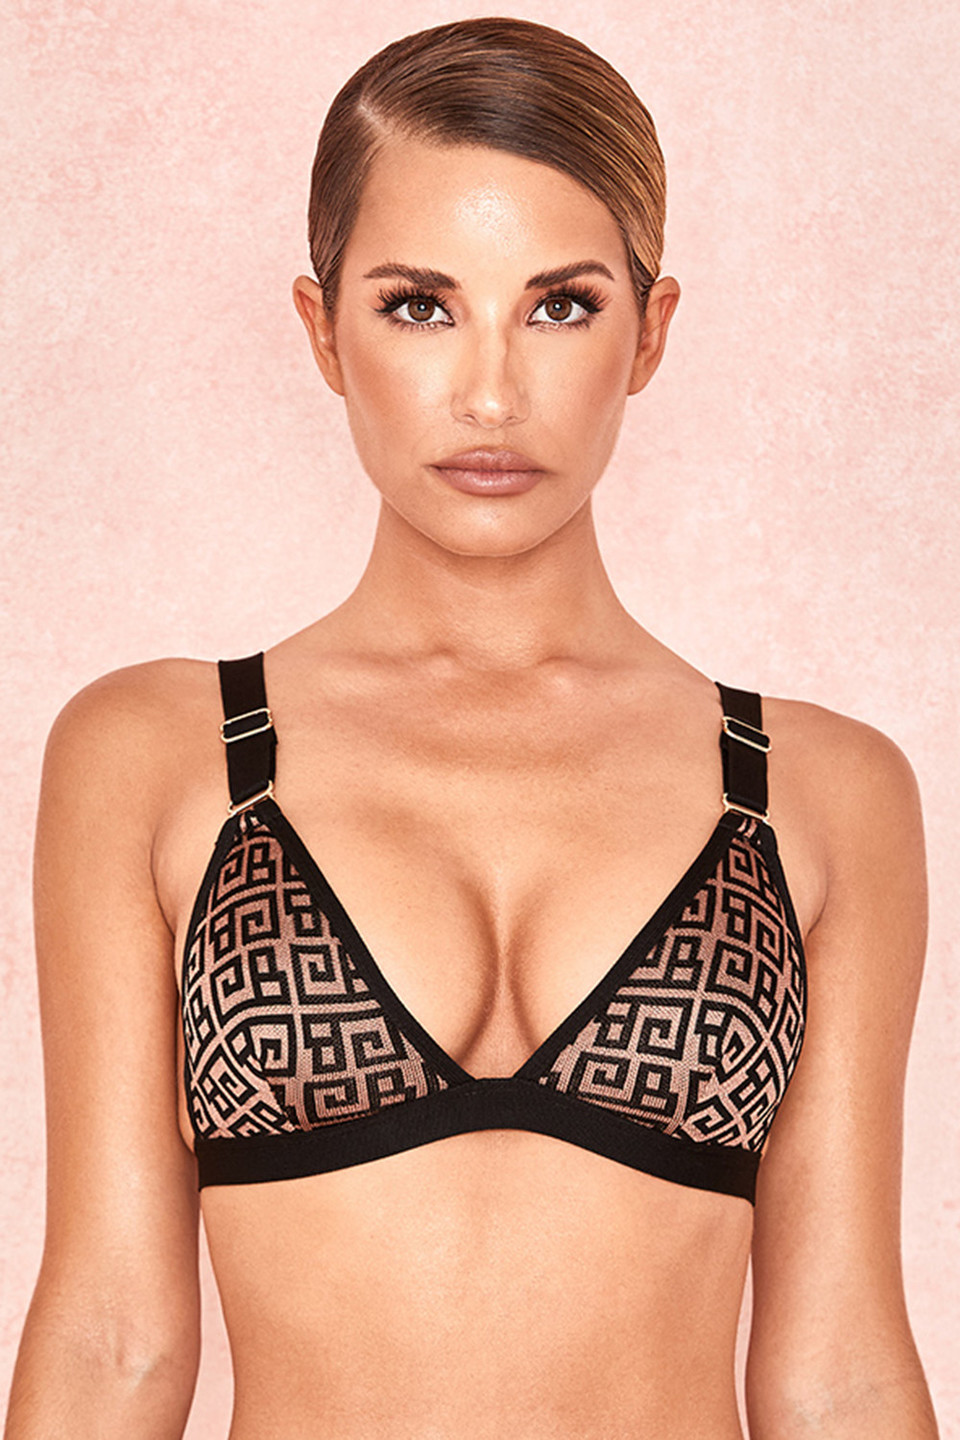 Milena Black + Tan Bandage Triangle Bra